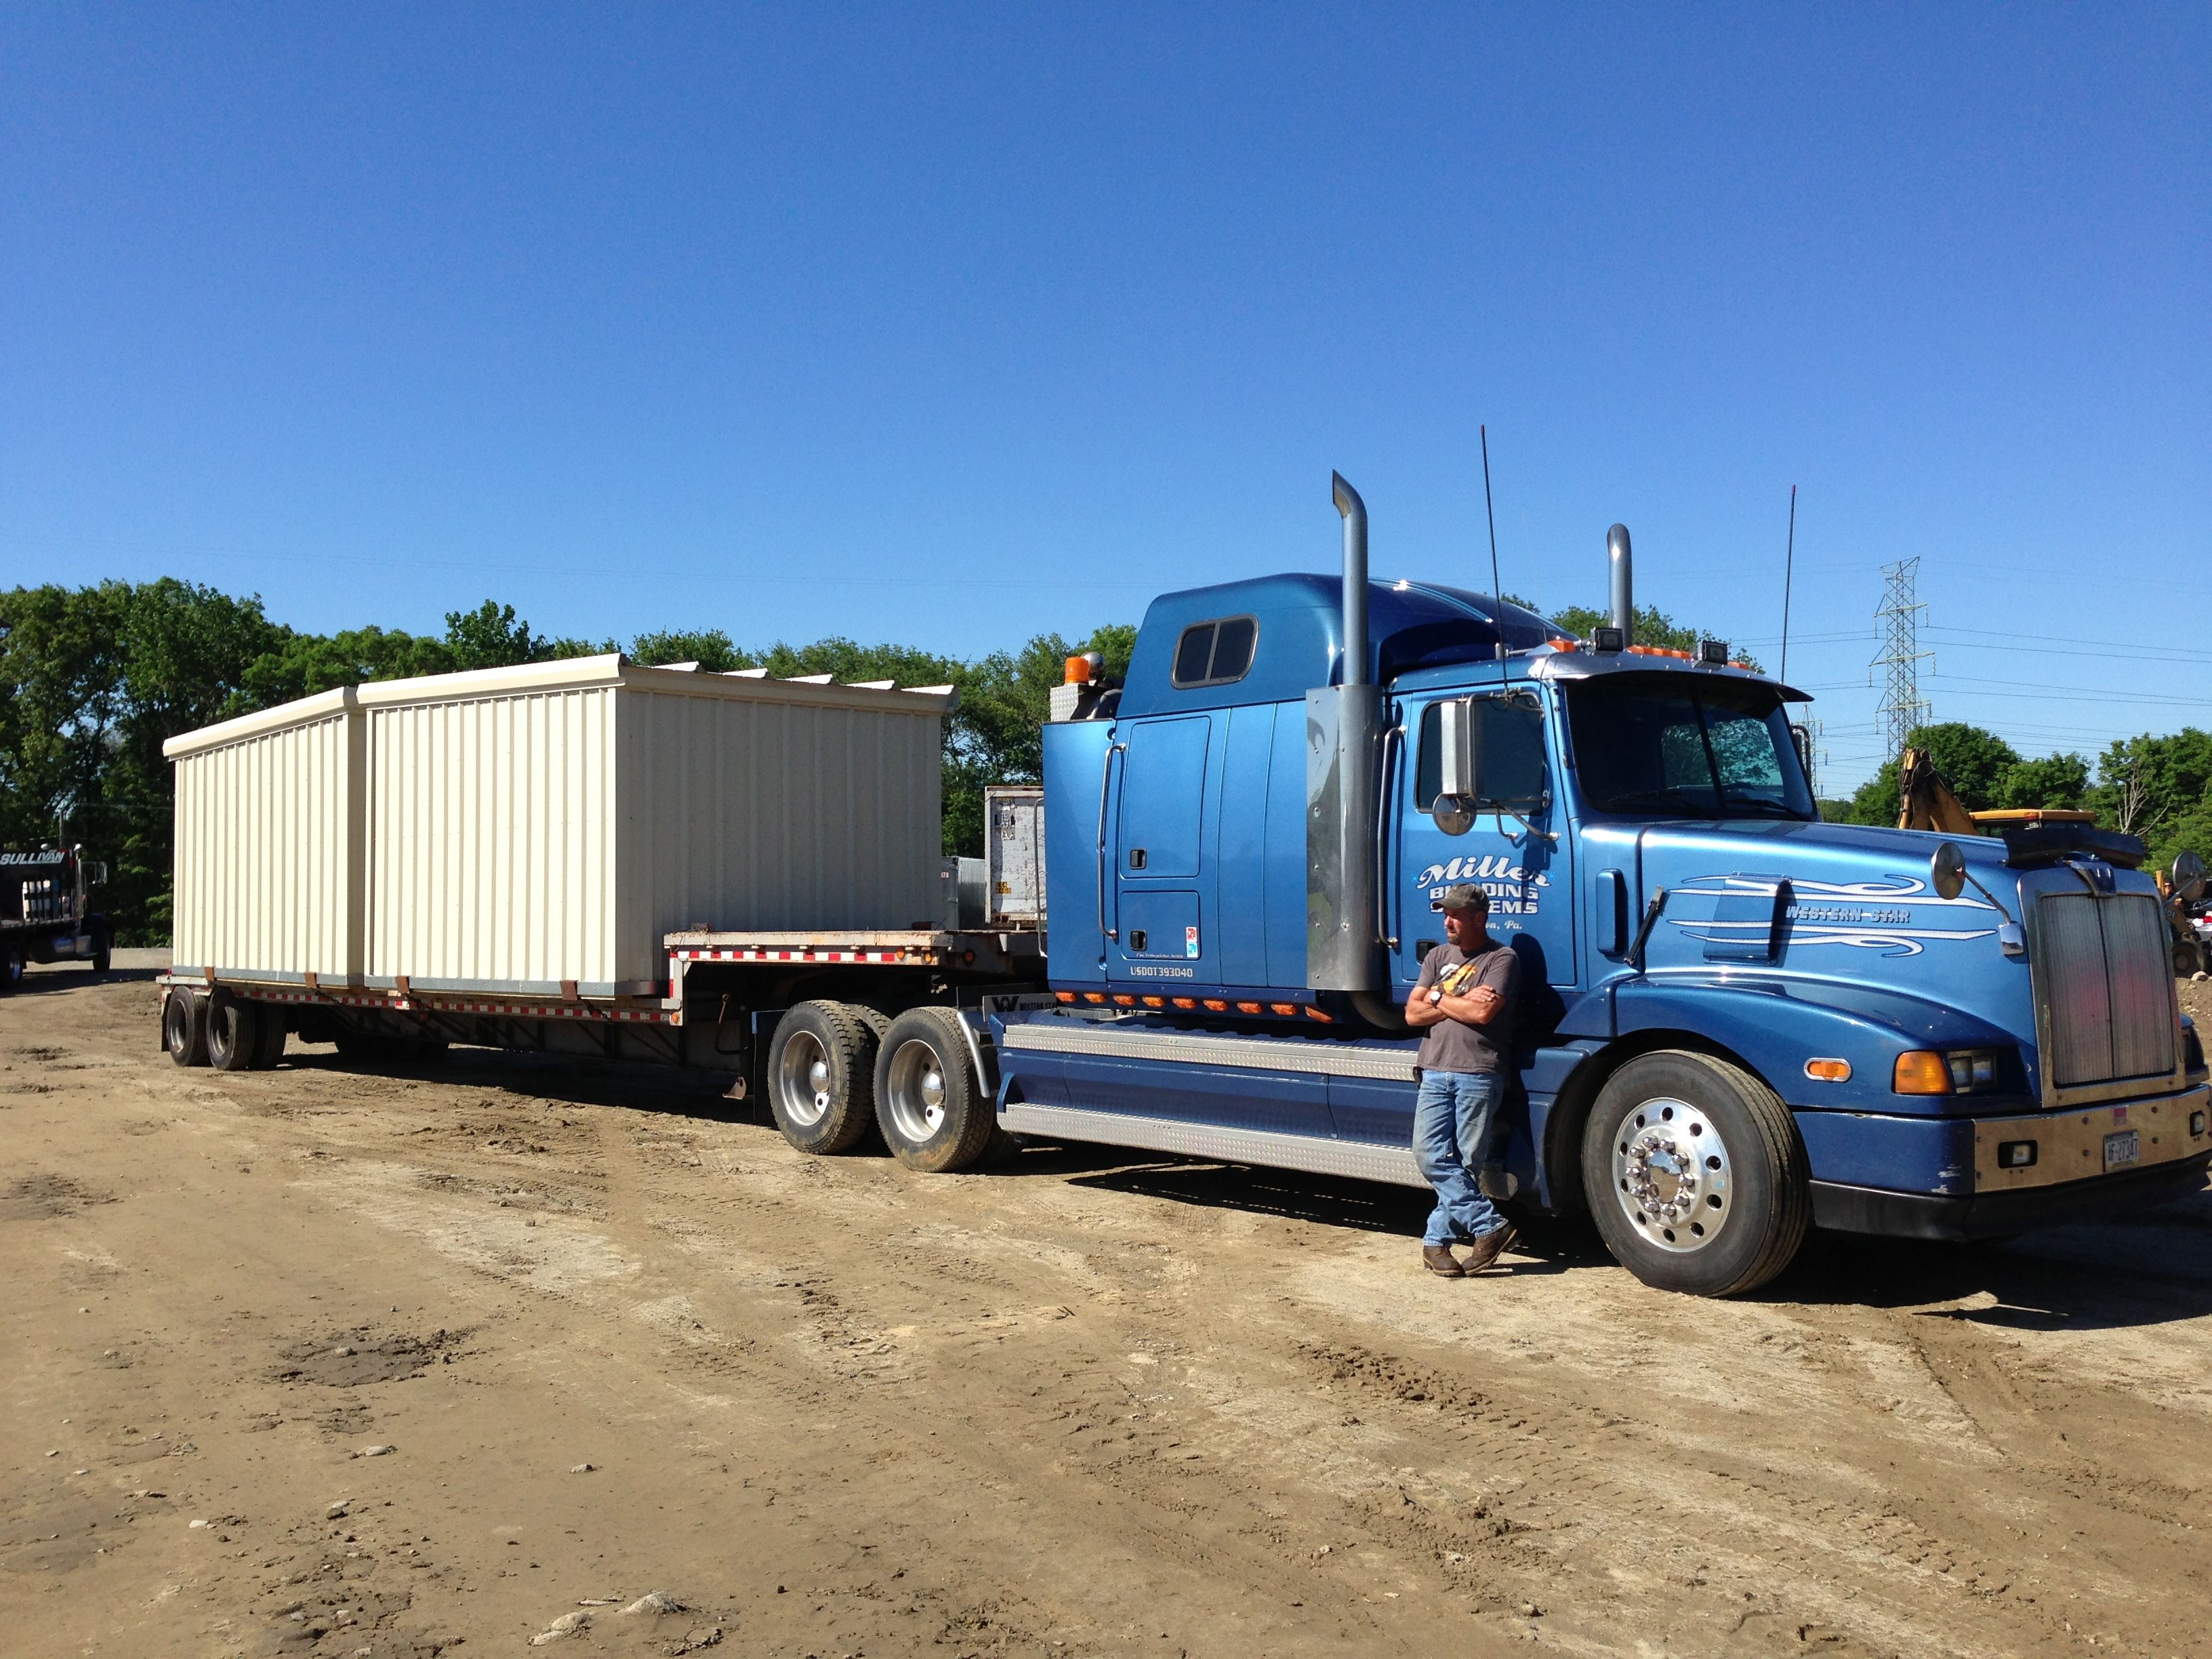 The Storage Units Are Delivered Completly Prefabricated, Ready To Use.